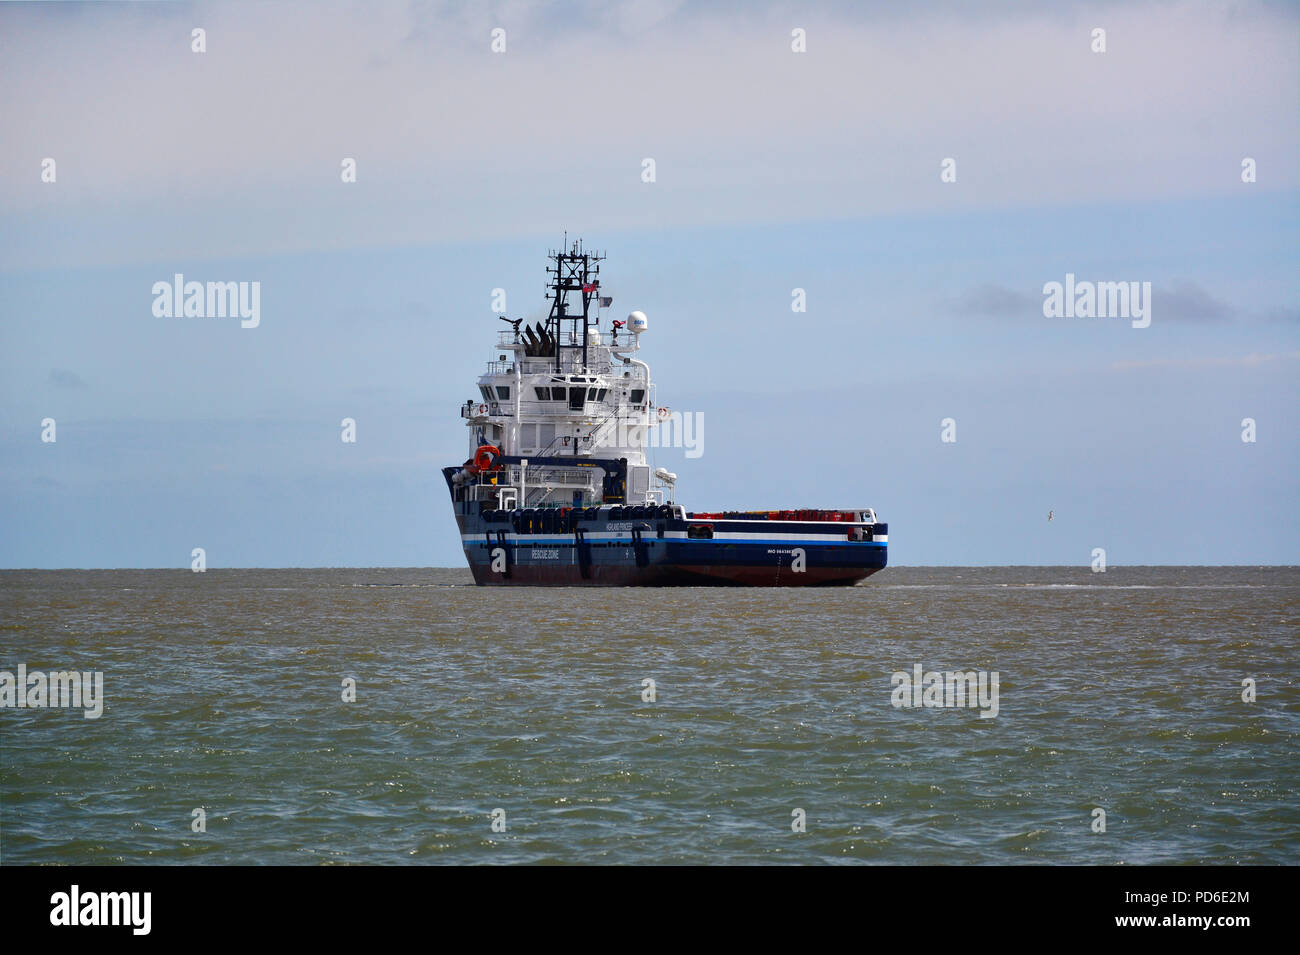 Highland Princess offshore supply vessel under way at Great Yarmouth, Norfolk, England. - Stock Image